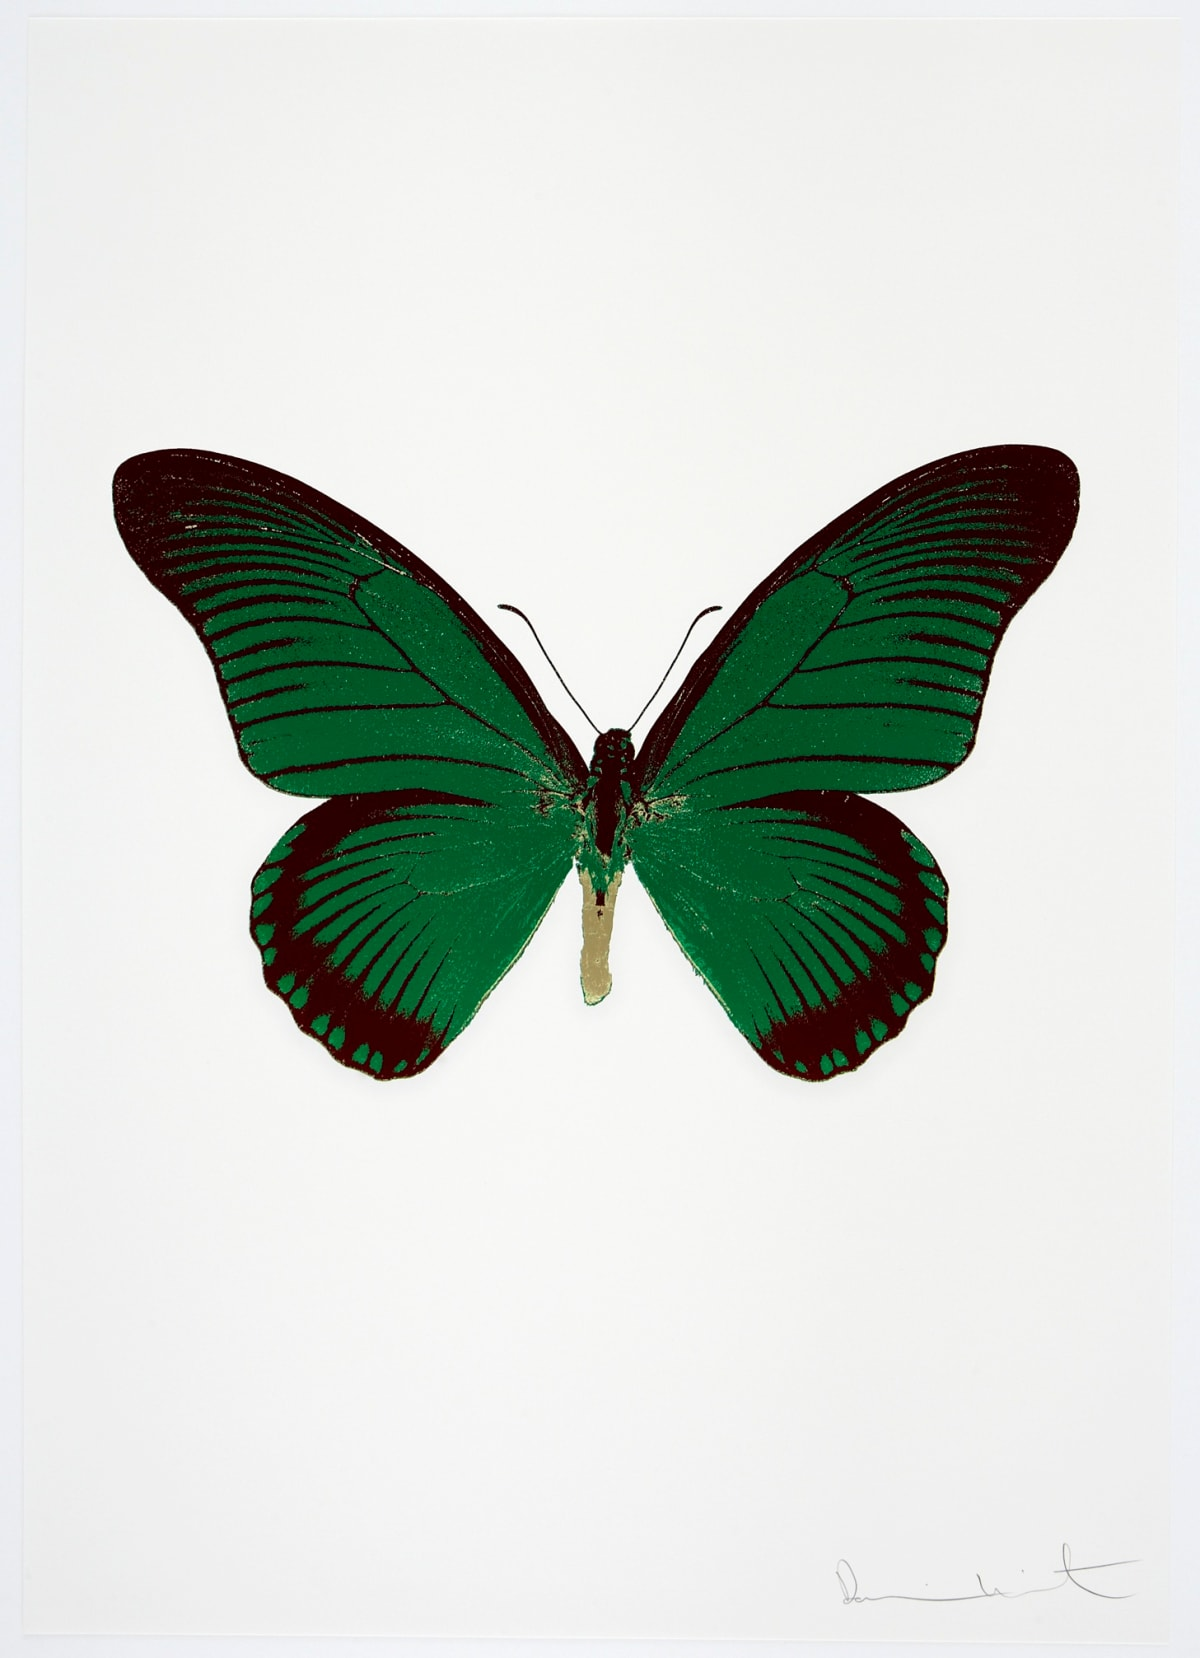 Damien Hirst The Souls IV - Emerald Green/Burgundy/Cool Gold, 2010 3 colour foil block on 300gsm Arches 88 archival paper. Signed and numbered. Published by Paul Stolper and Other Criteria 72 x 51cm OC8021 / 1418-44 Edition of 15